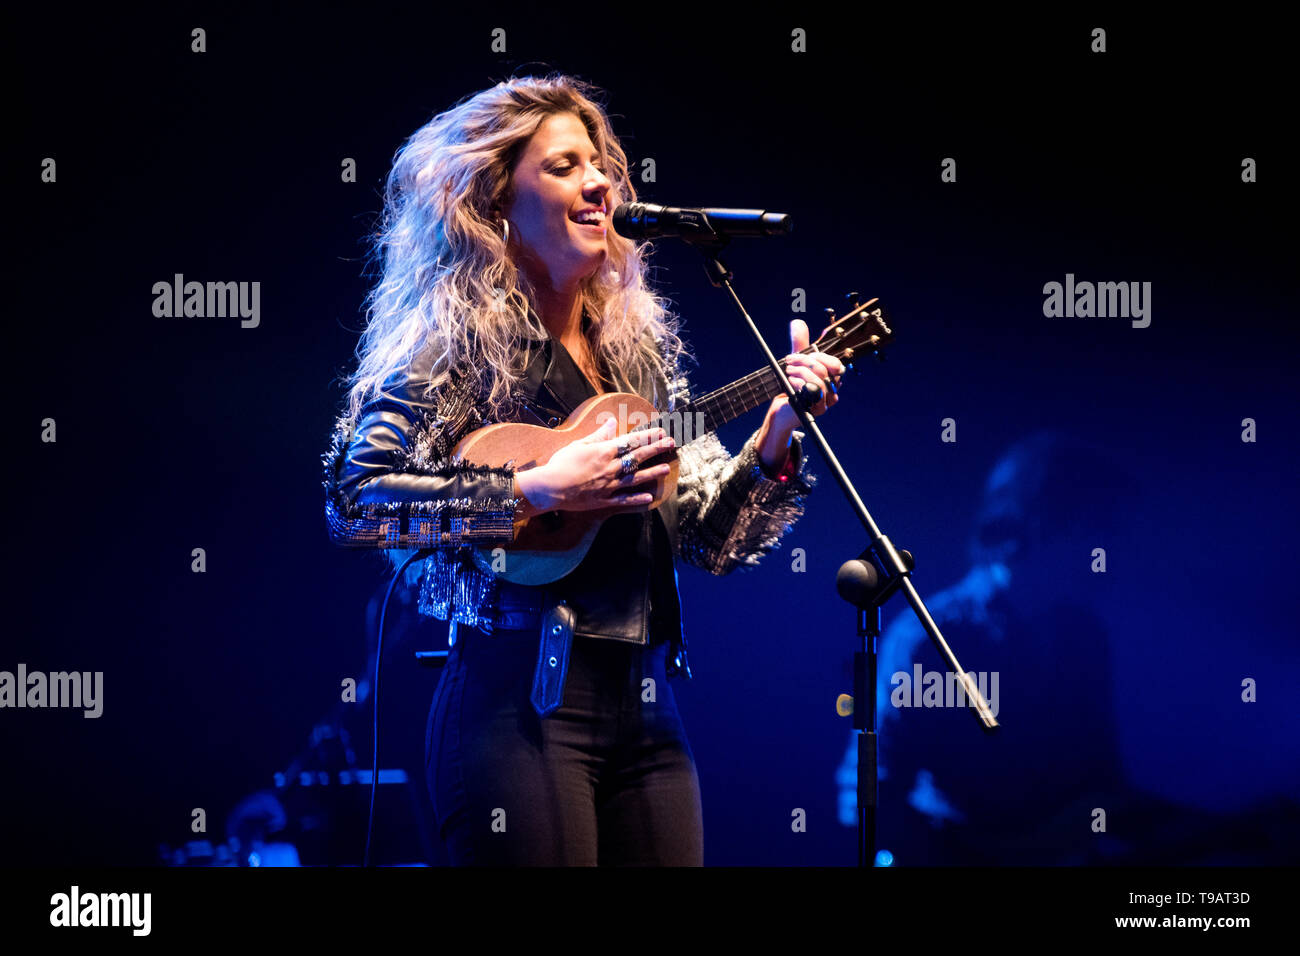 Gijon, Spain  17th May, 2019  Spanish singer Miriam